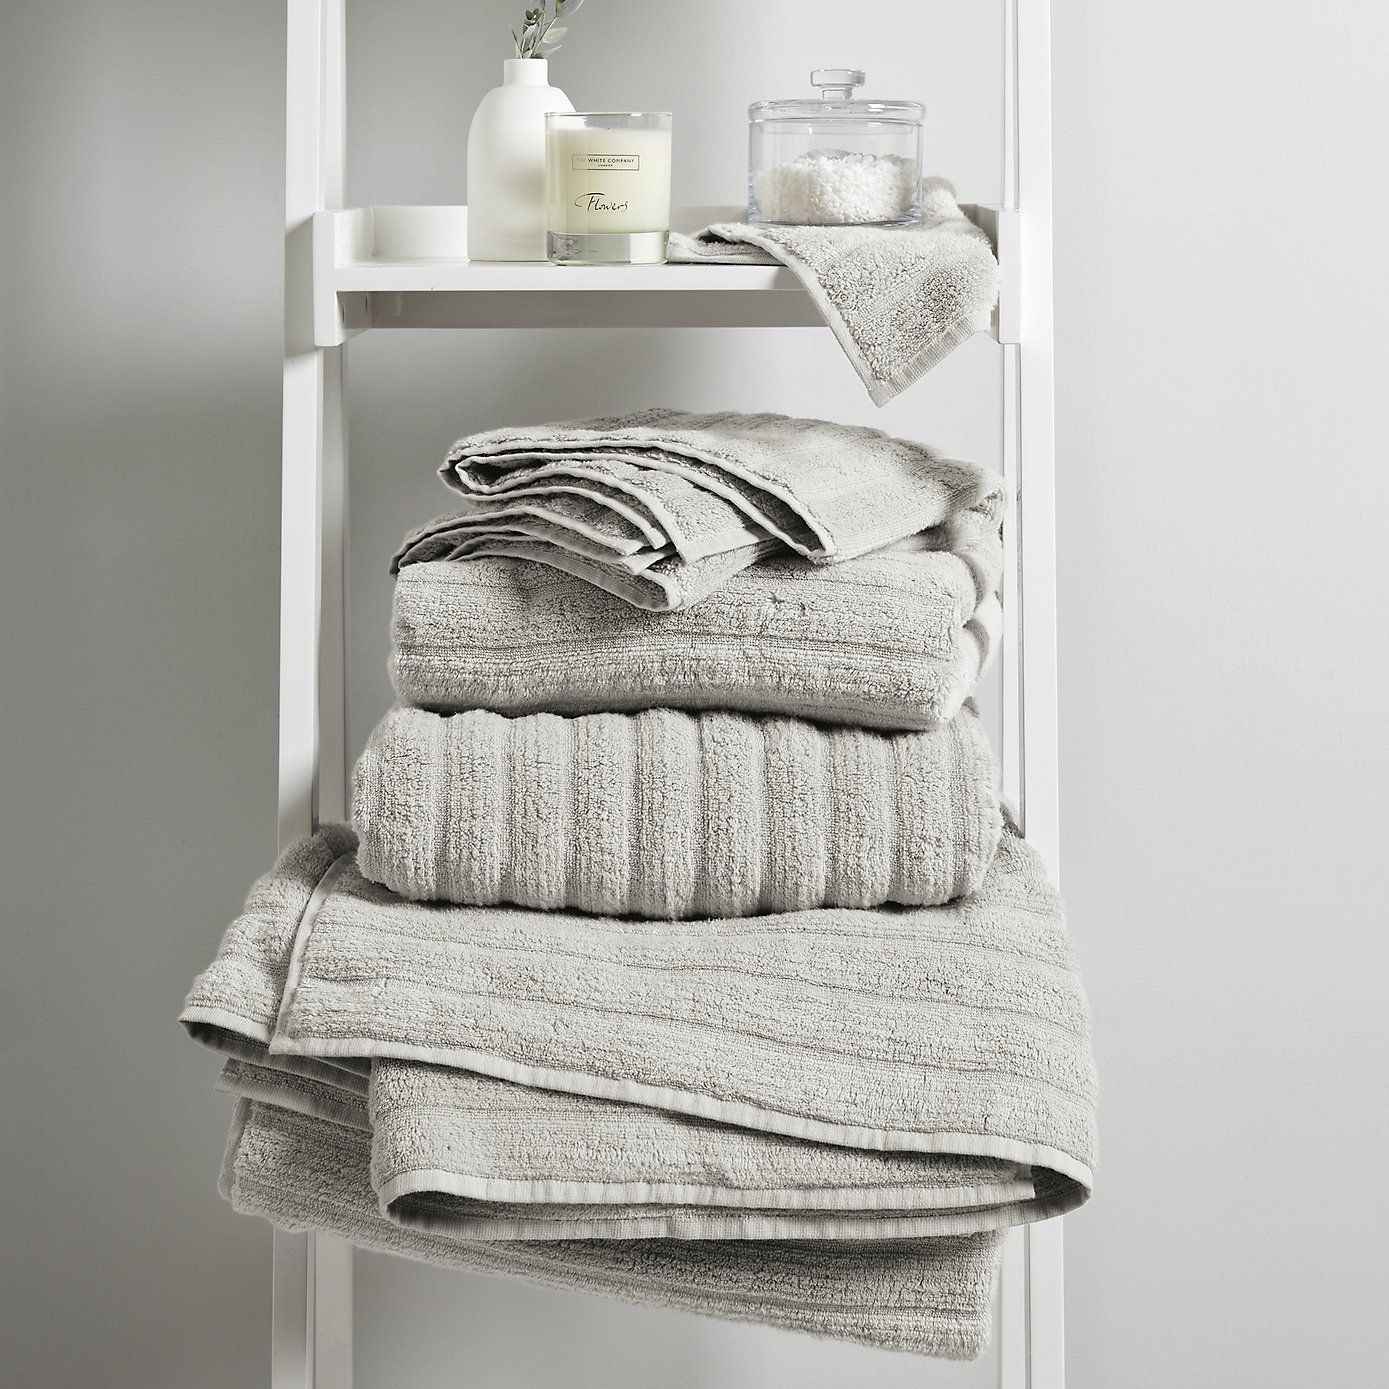 Hydrocotton Bath Towels Awesome Hydrocotton Towels  White Company Towels And Bungalow Inspiration Design